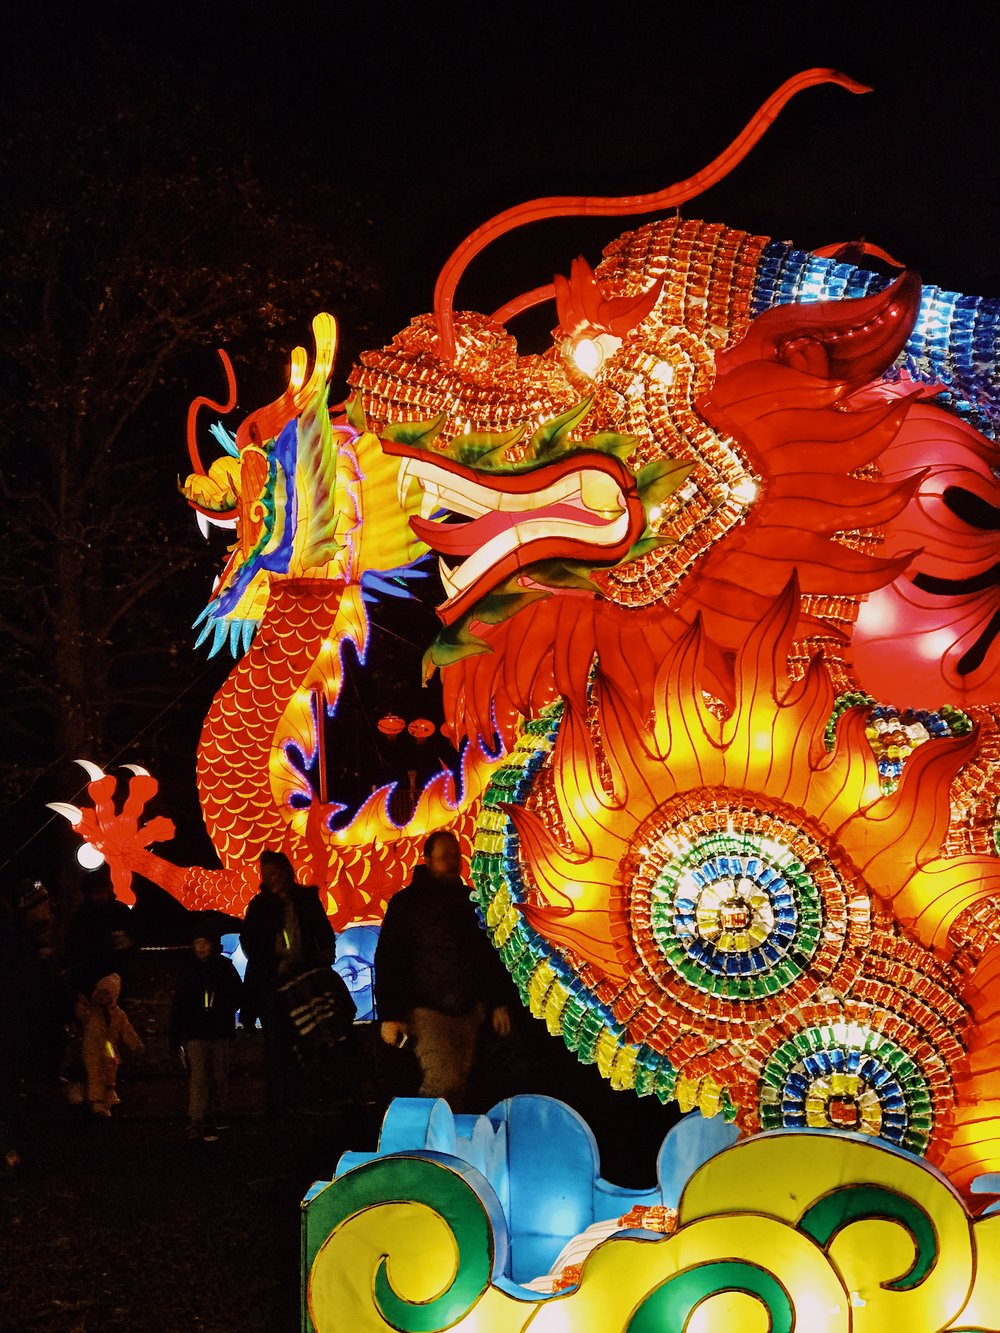 Dragon Chinese lantern display at Edinburgh Zoo